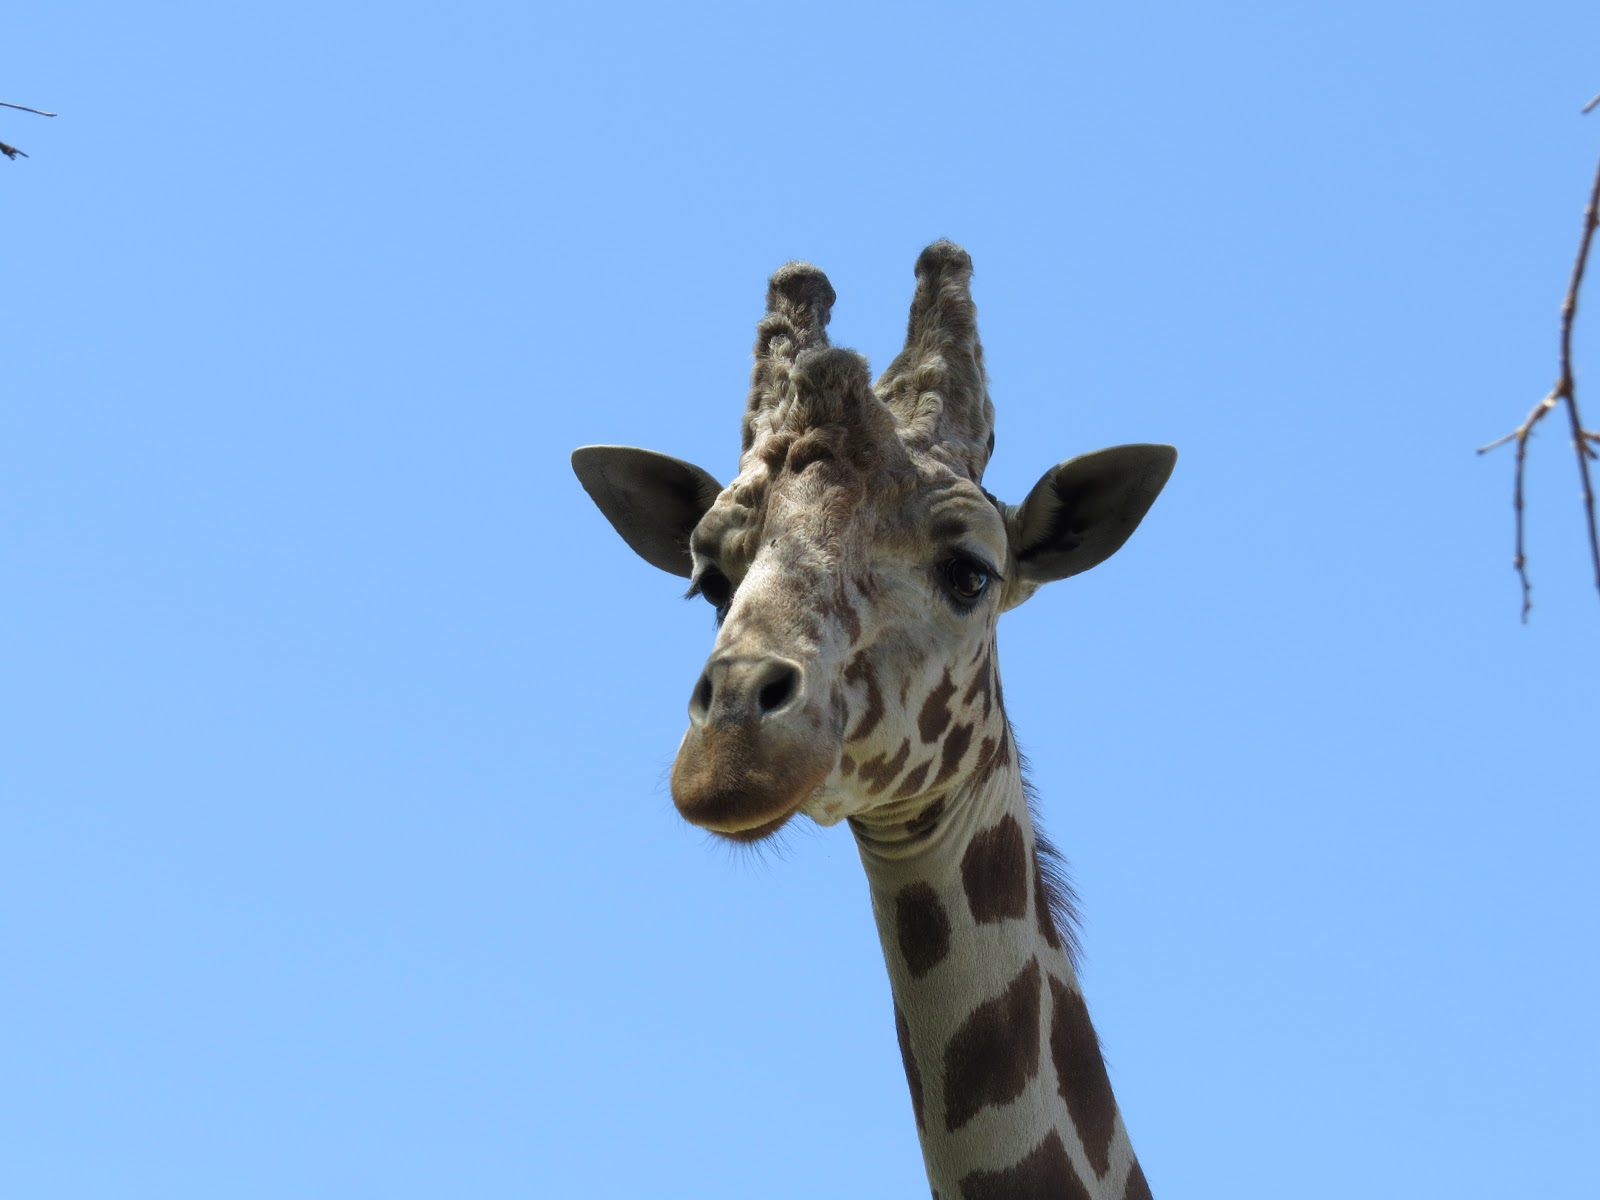 The Living Desert giraffe